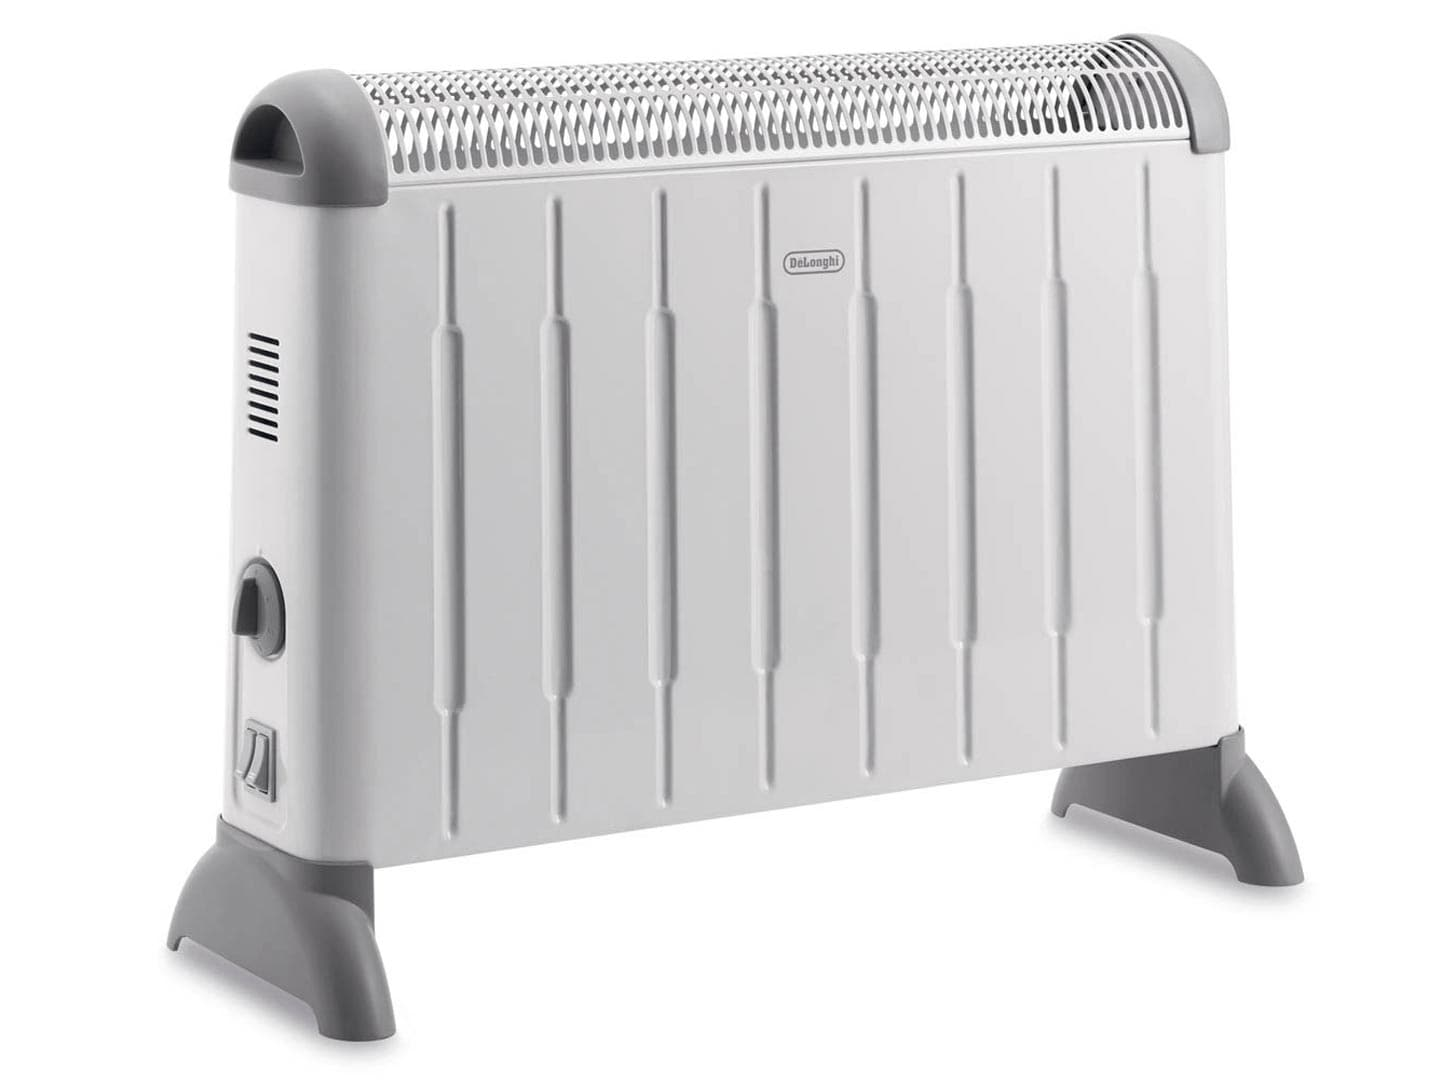 DeLonghi Portable Convection Heater 2000W HCM2030